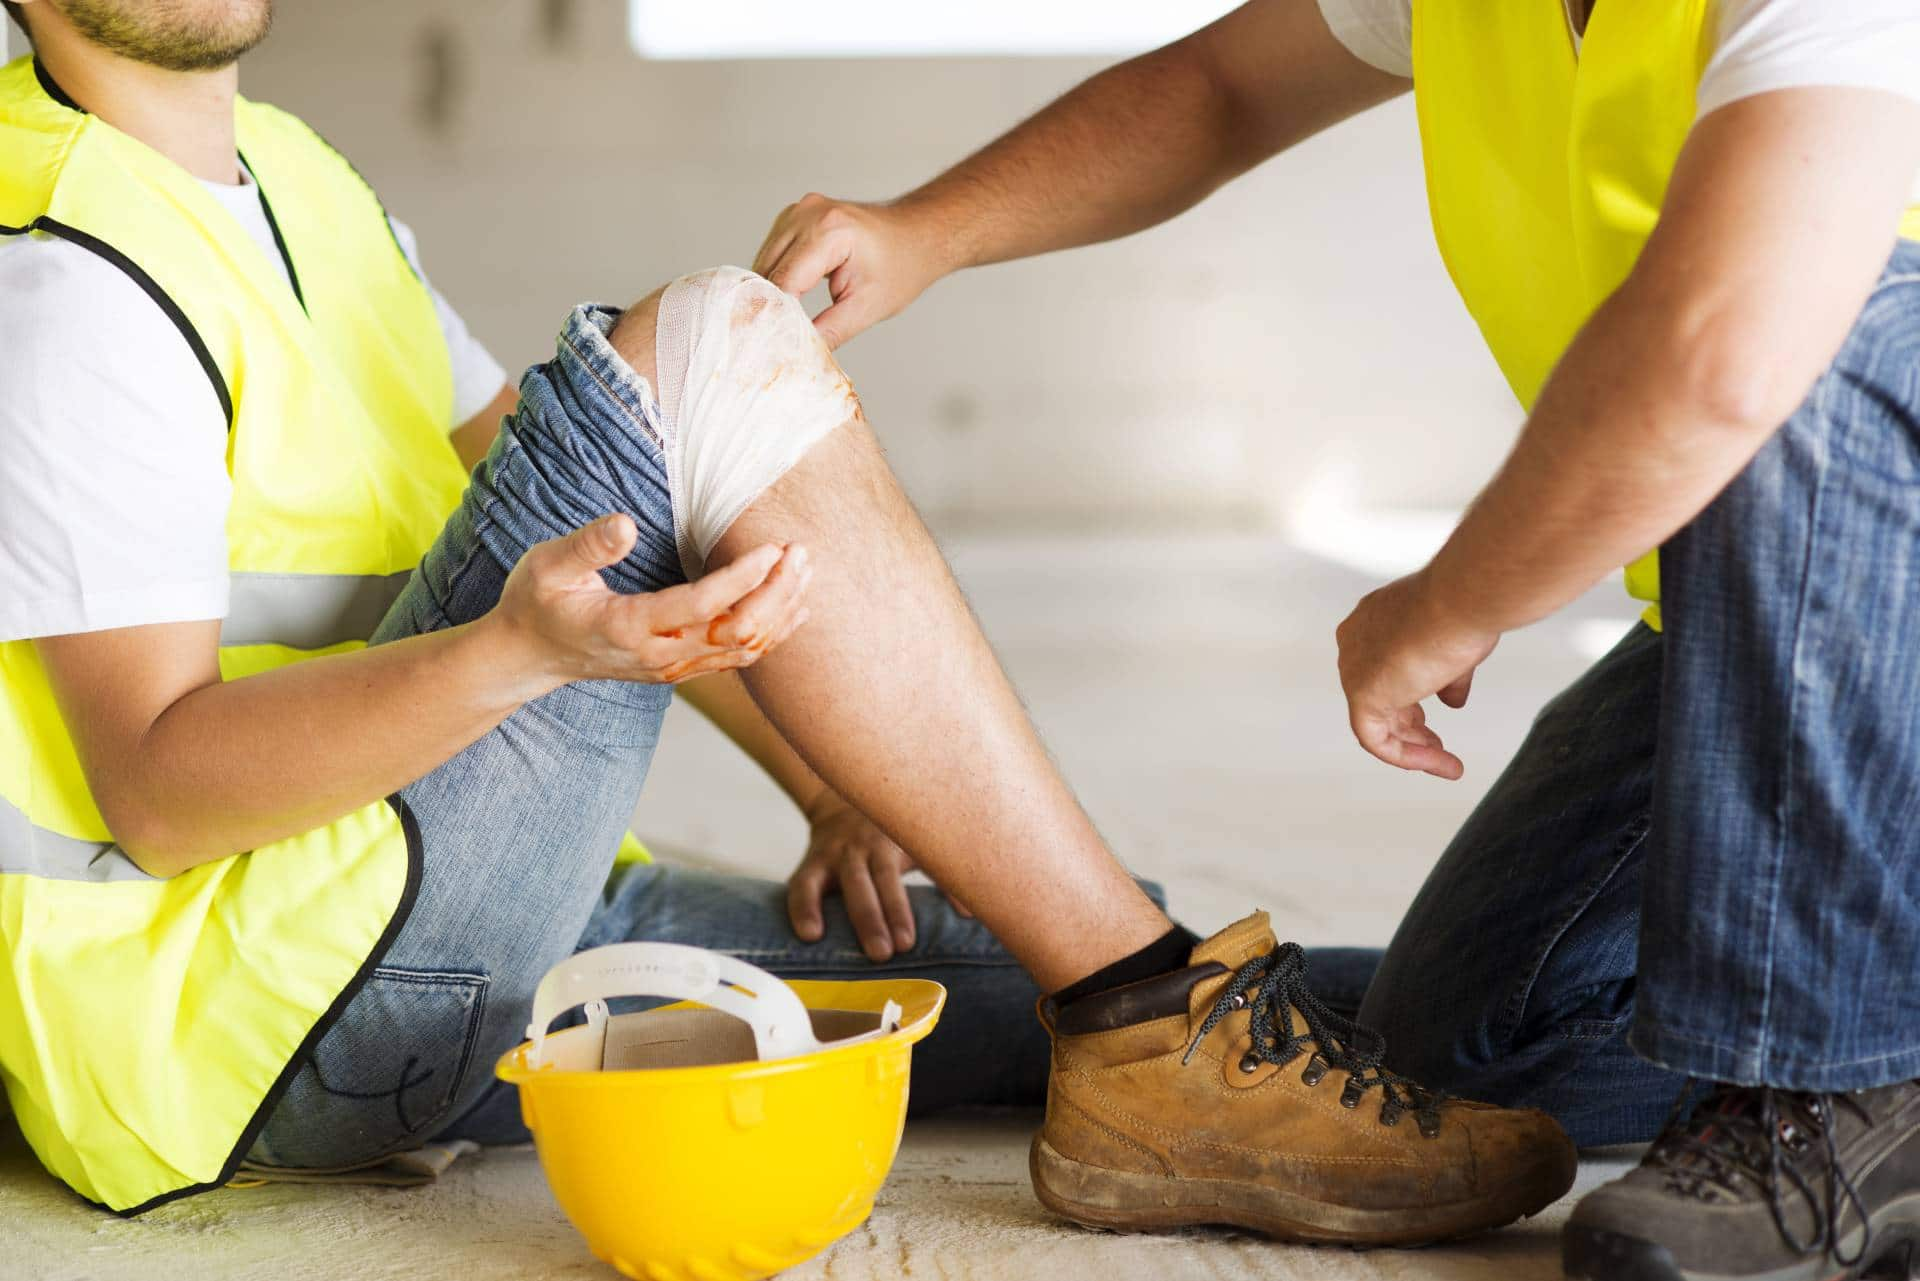 Hurt on the job? Schedule a free consultation with our personal injury lawyers at the angell law firm in Paces.